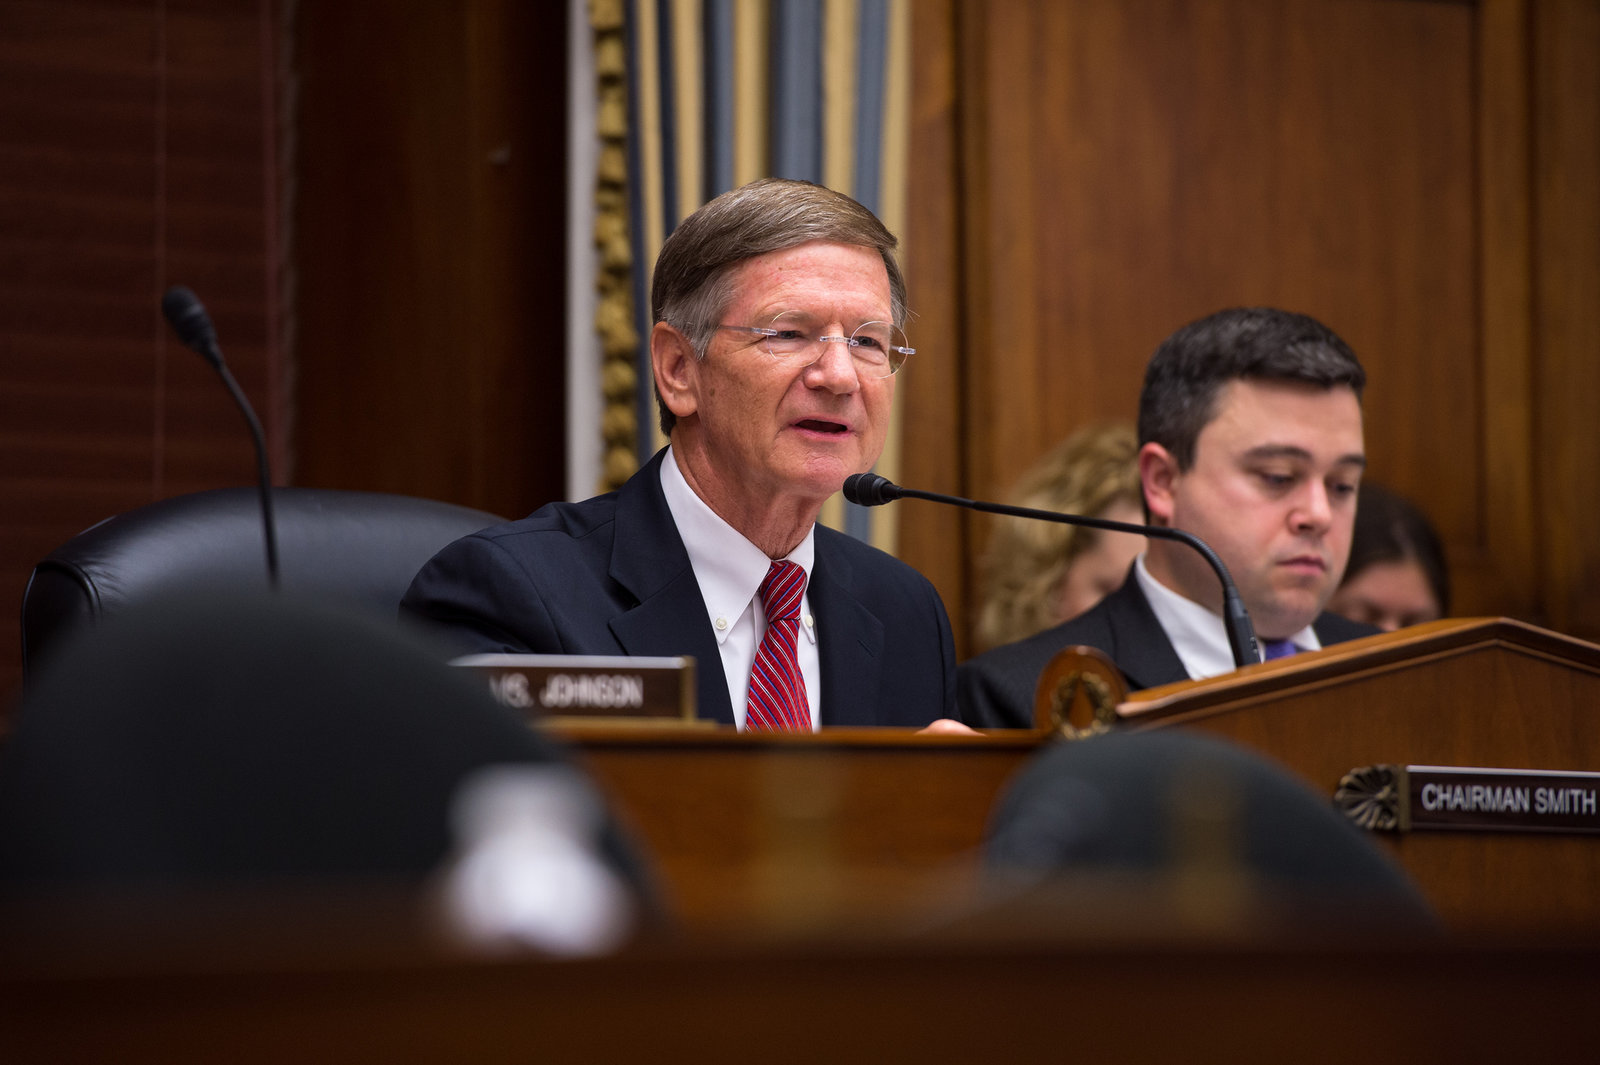 House Science Committee chair Lamar Smith continued his counterassault on the Exxon investigations